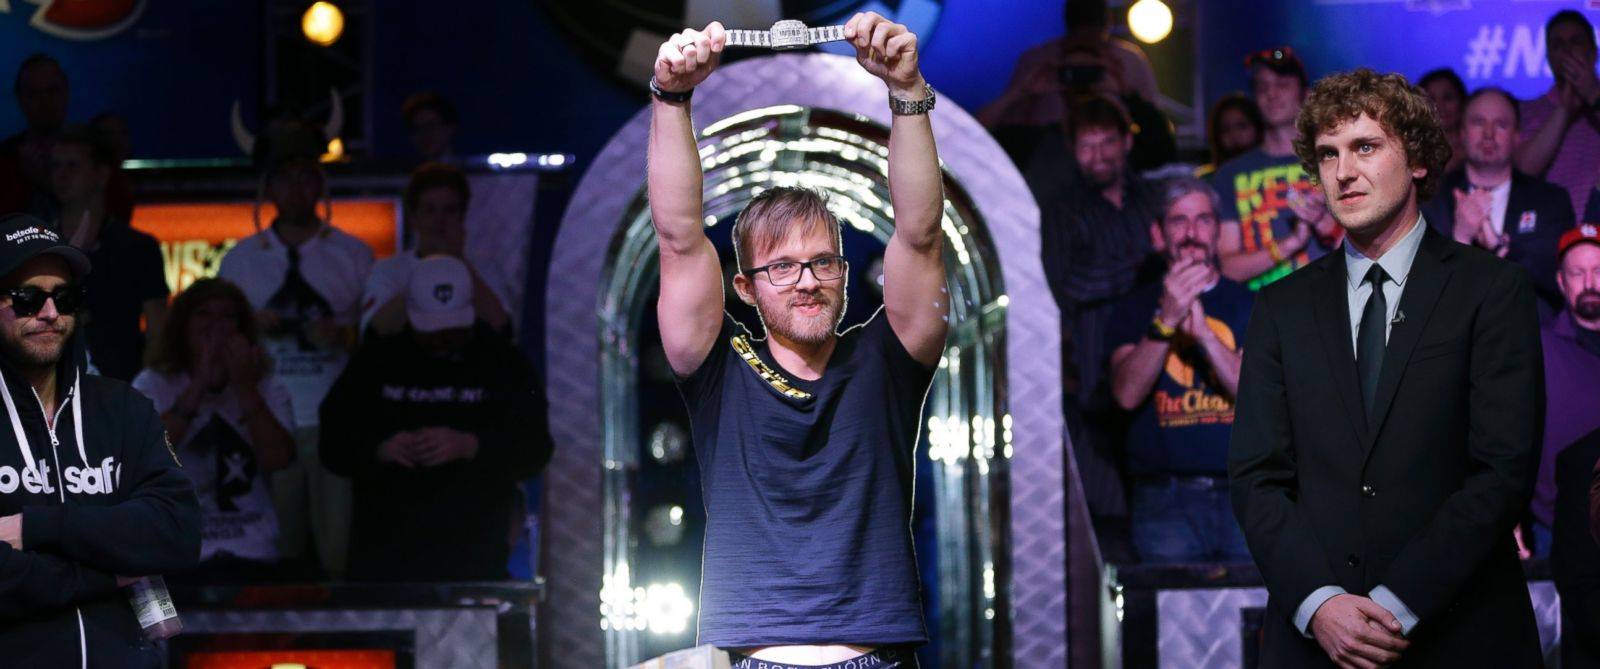 Martin Jacobson holds up the World Series of Poker main event bracelet after winning the tournament and its $10 million prize, Nov. 11, 2014, in Las Vegas.